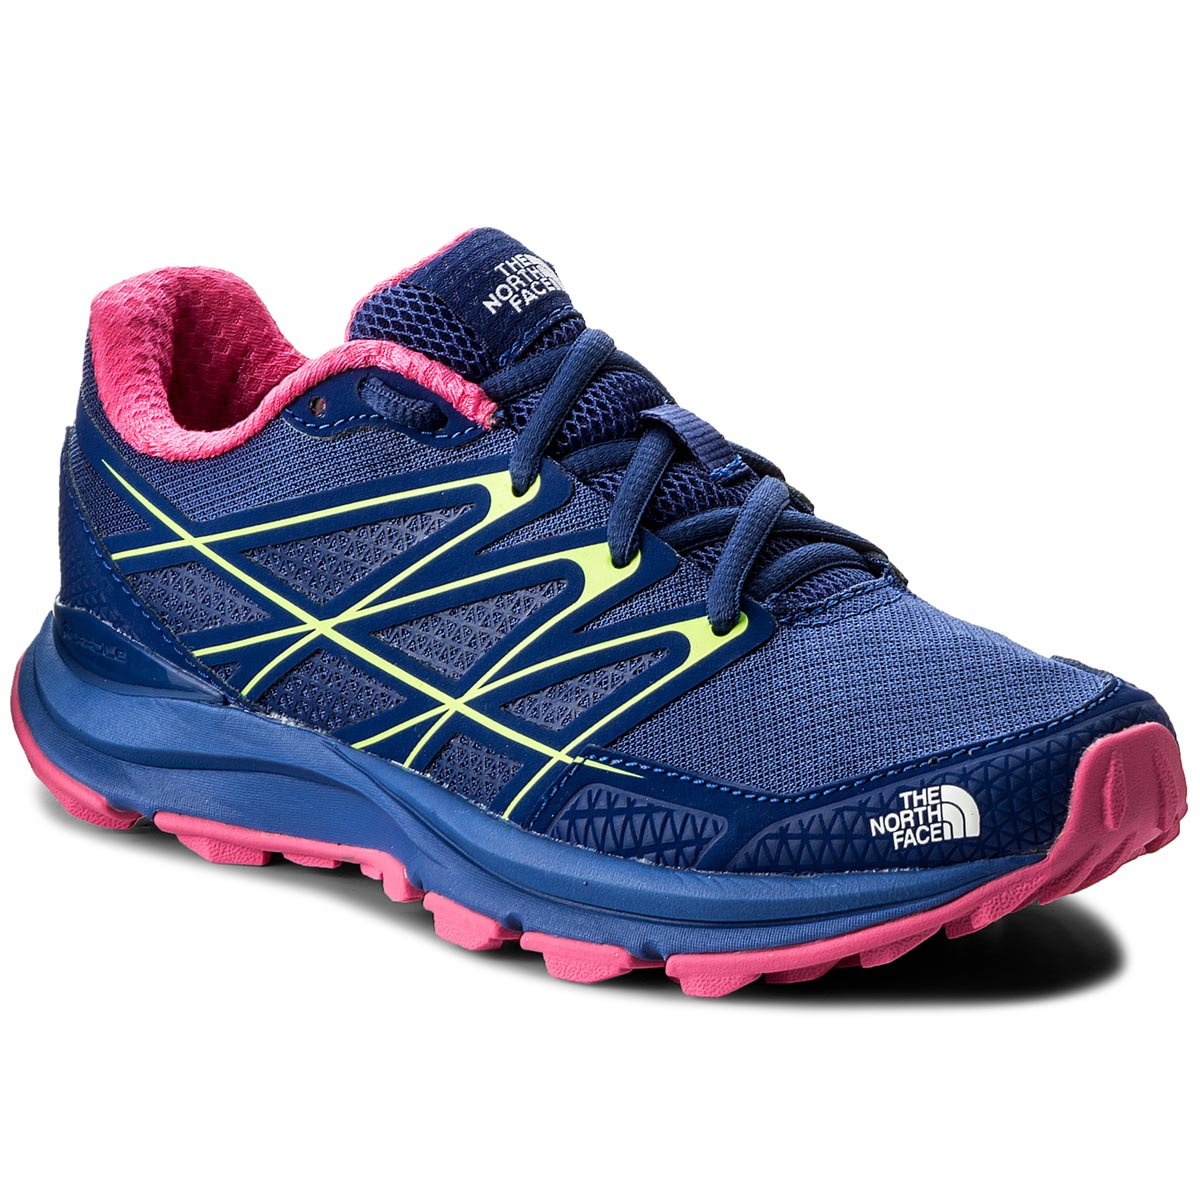 Buty THE NORTH FACE - LiteWave Endurance T92VVJ3TR Sodalite Blue/Glo Pink